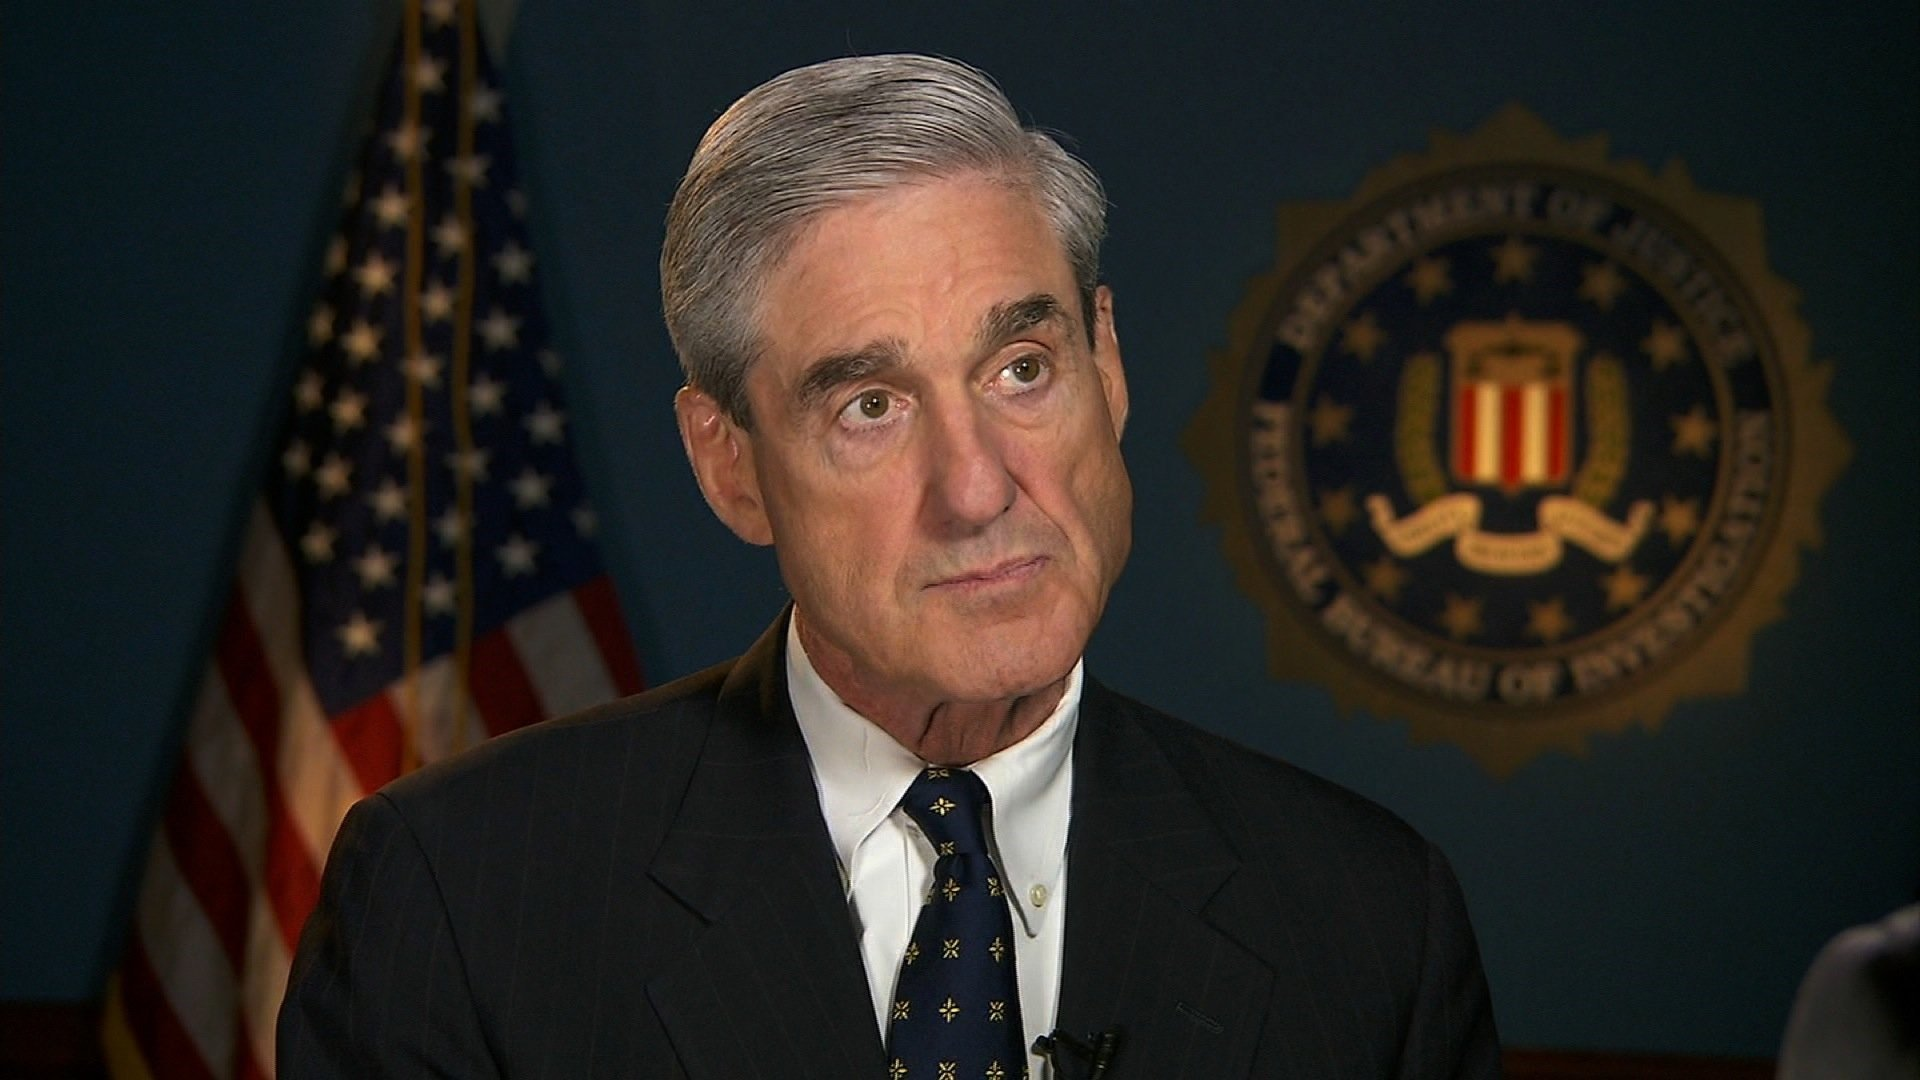 The Justice Department on Wednesday appointed former FBI Director Robert Mueller as special counsel to oversee the federal investigation into Russian interference in the 2016 election including potential collusion between Trump campaign associates